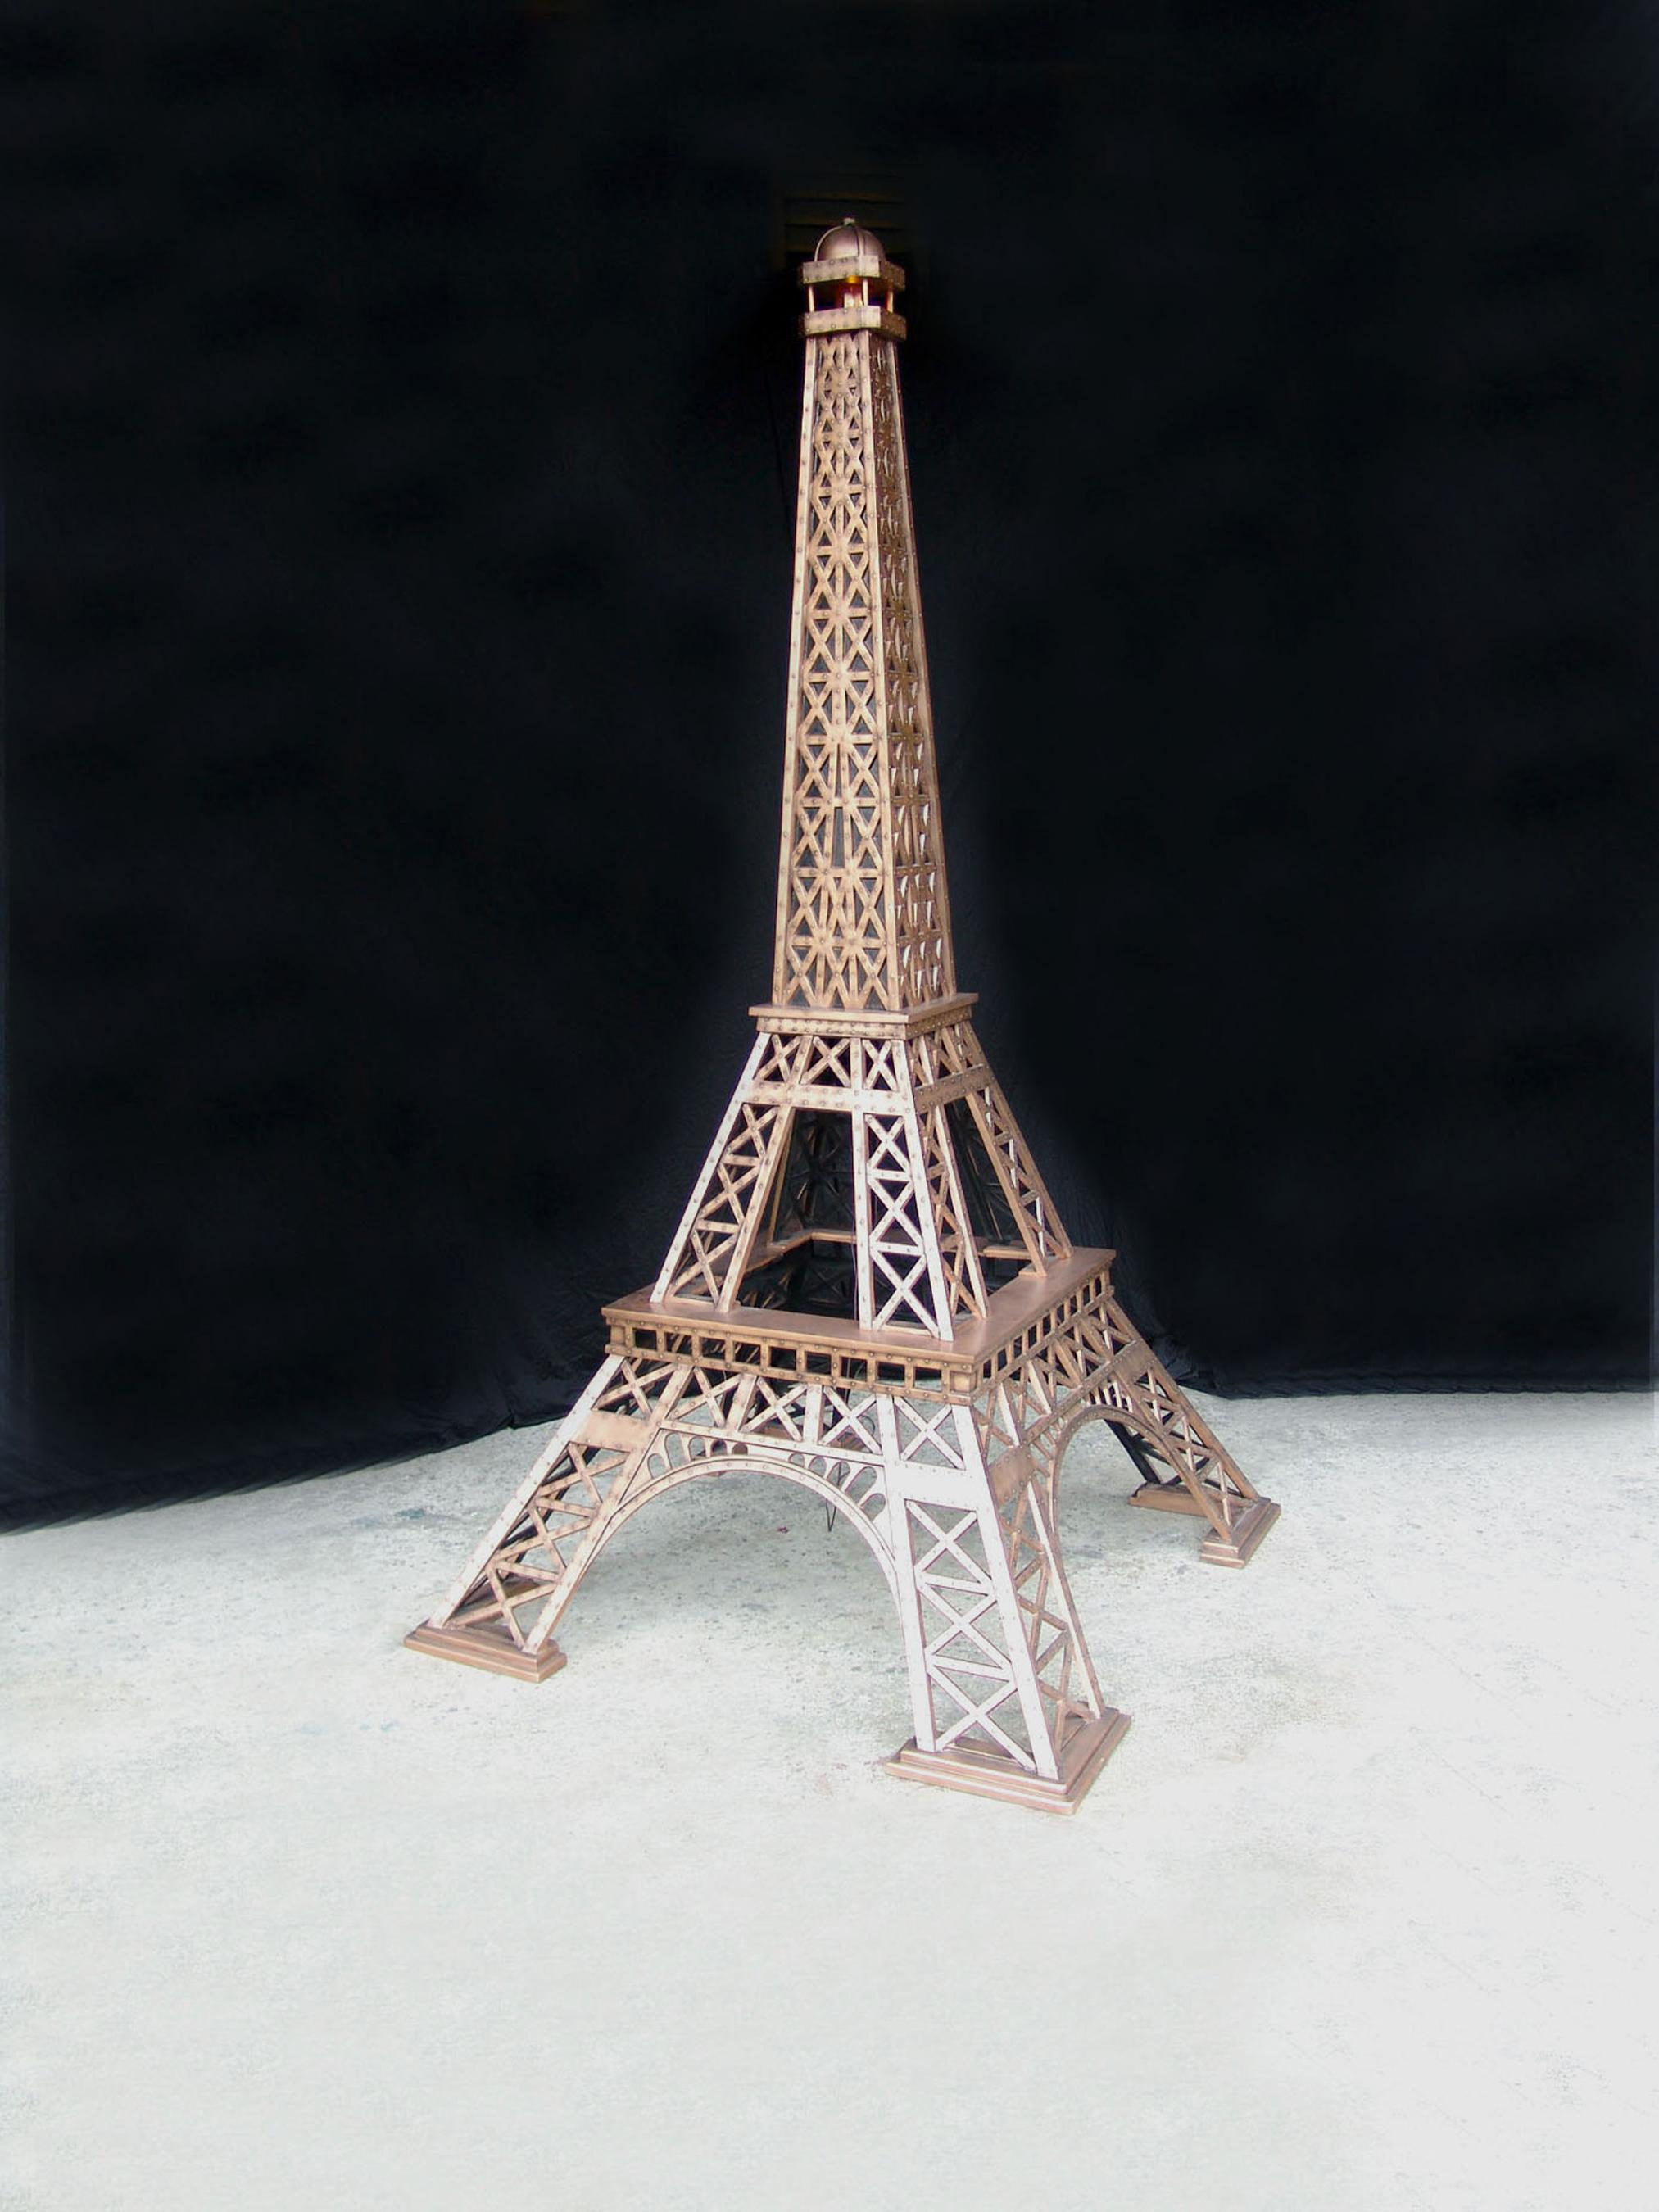 13' Eiffel Tower